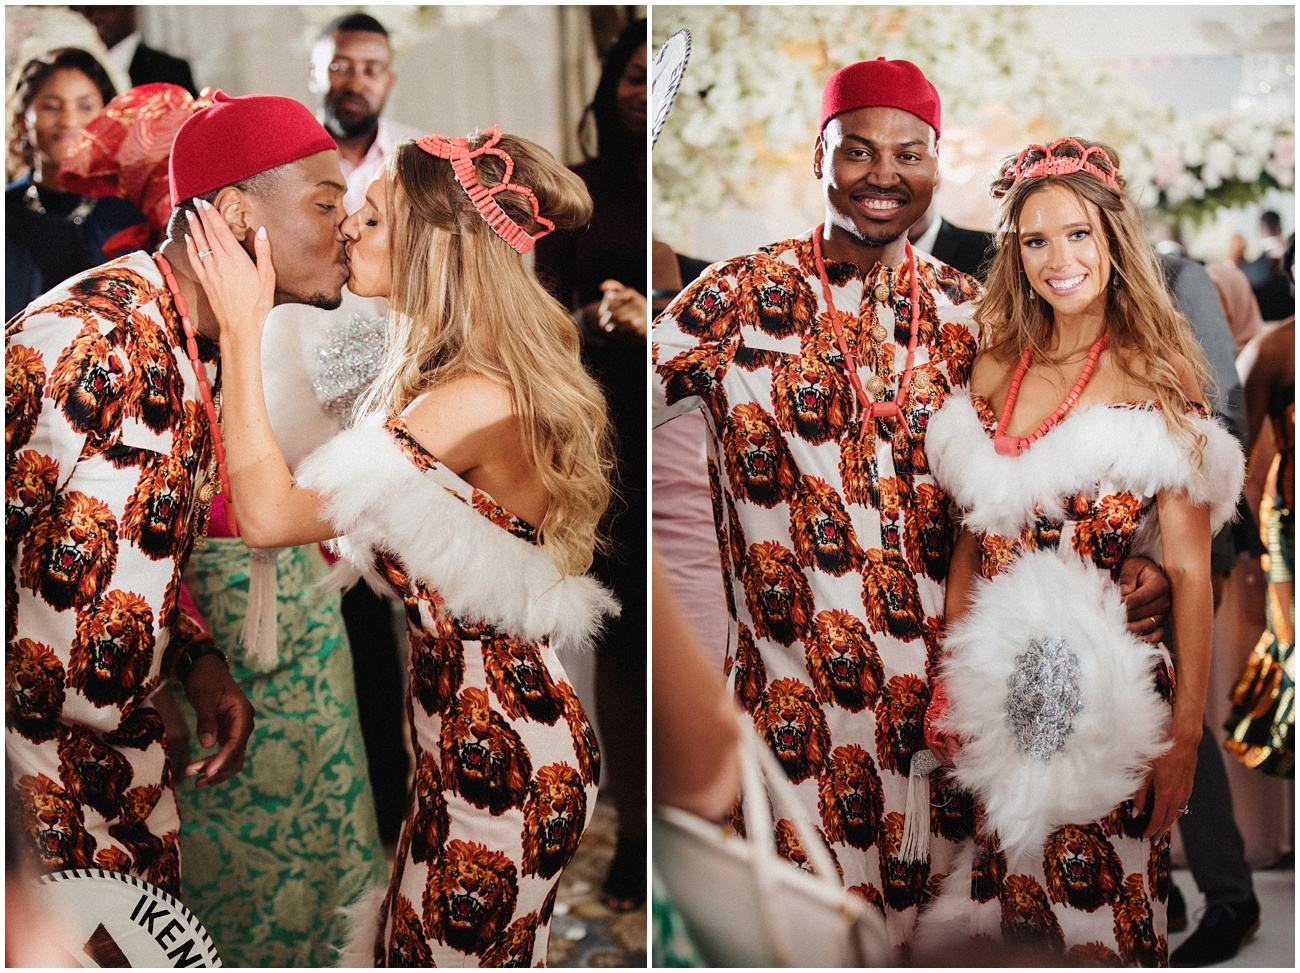 The bride and groom kissing and posing for the camera in their Nigerian wedding outfits